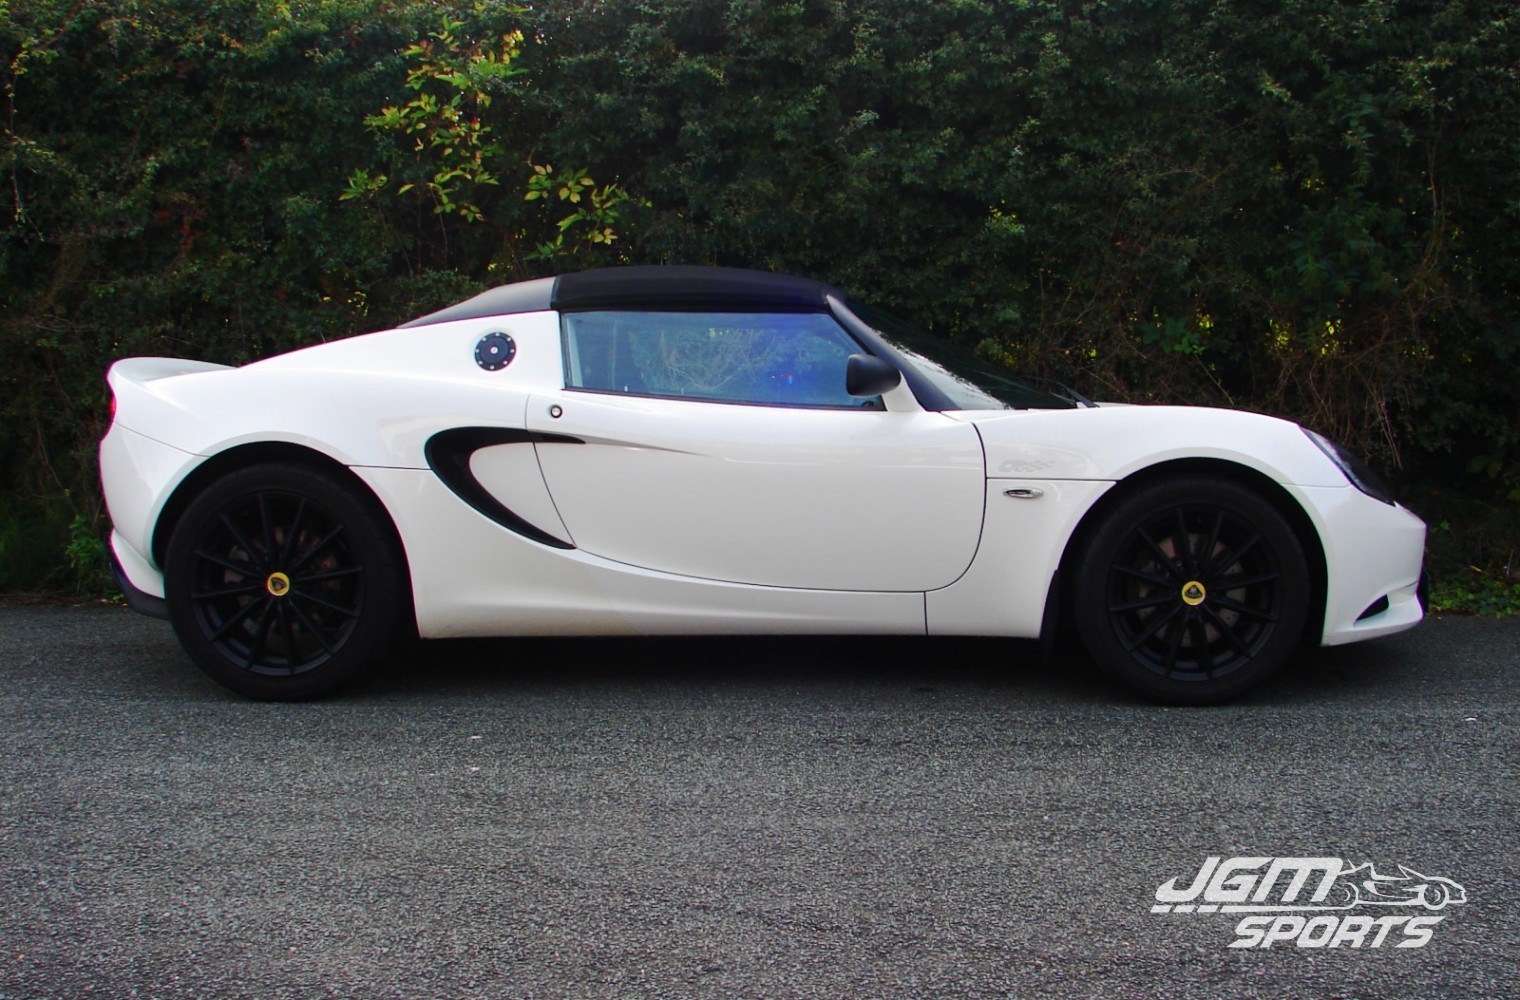 2011 s3 lotus elise club racer 1 6 aspen white jgmsports. Black Bedroom Furniture Sets. Home Design Ideas